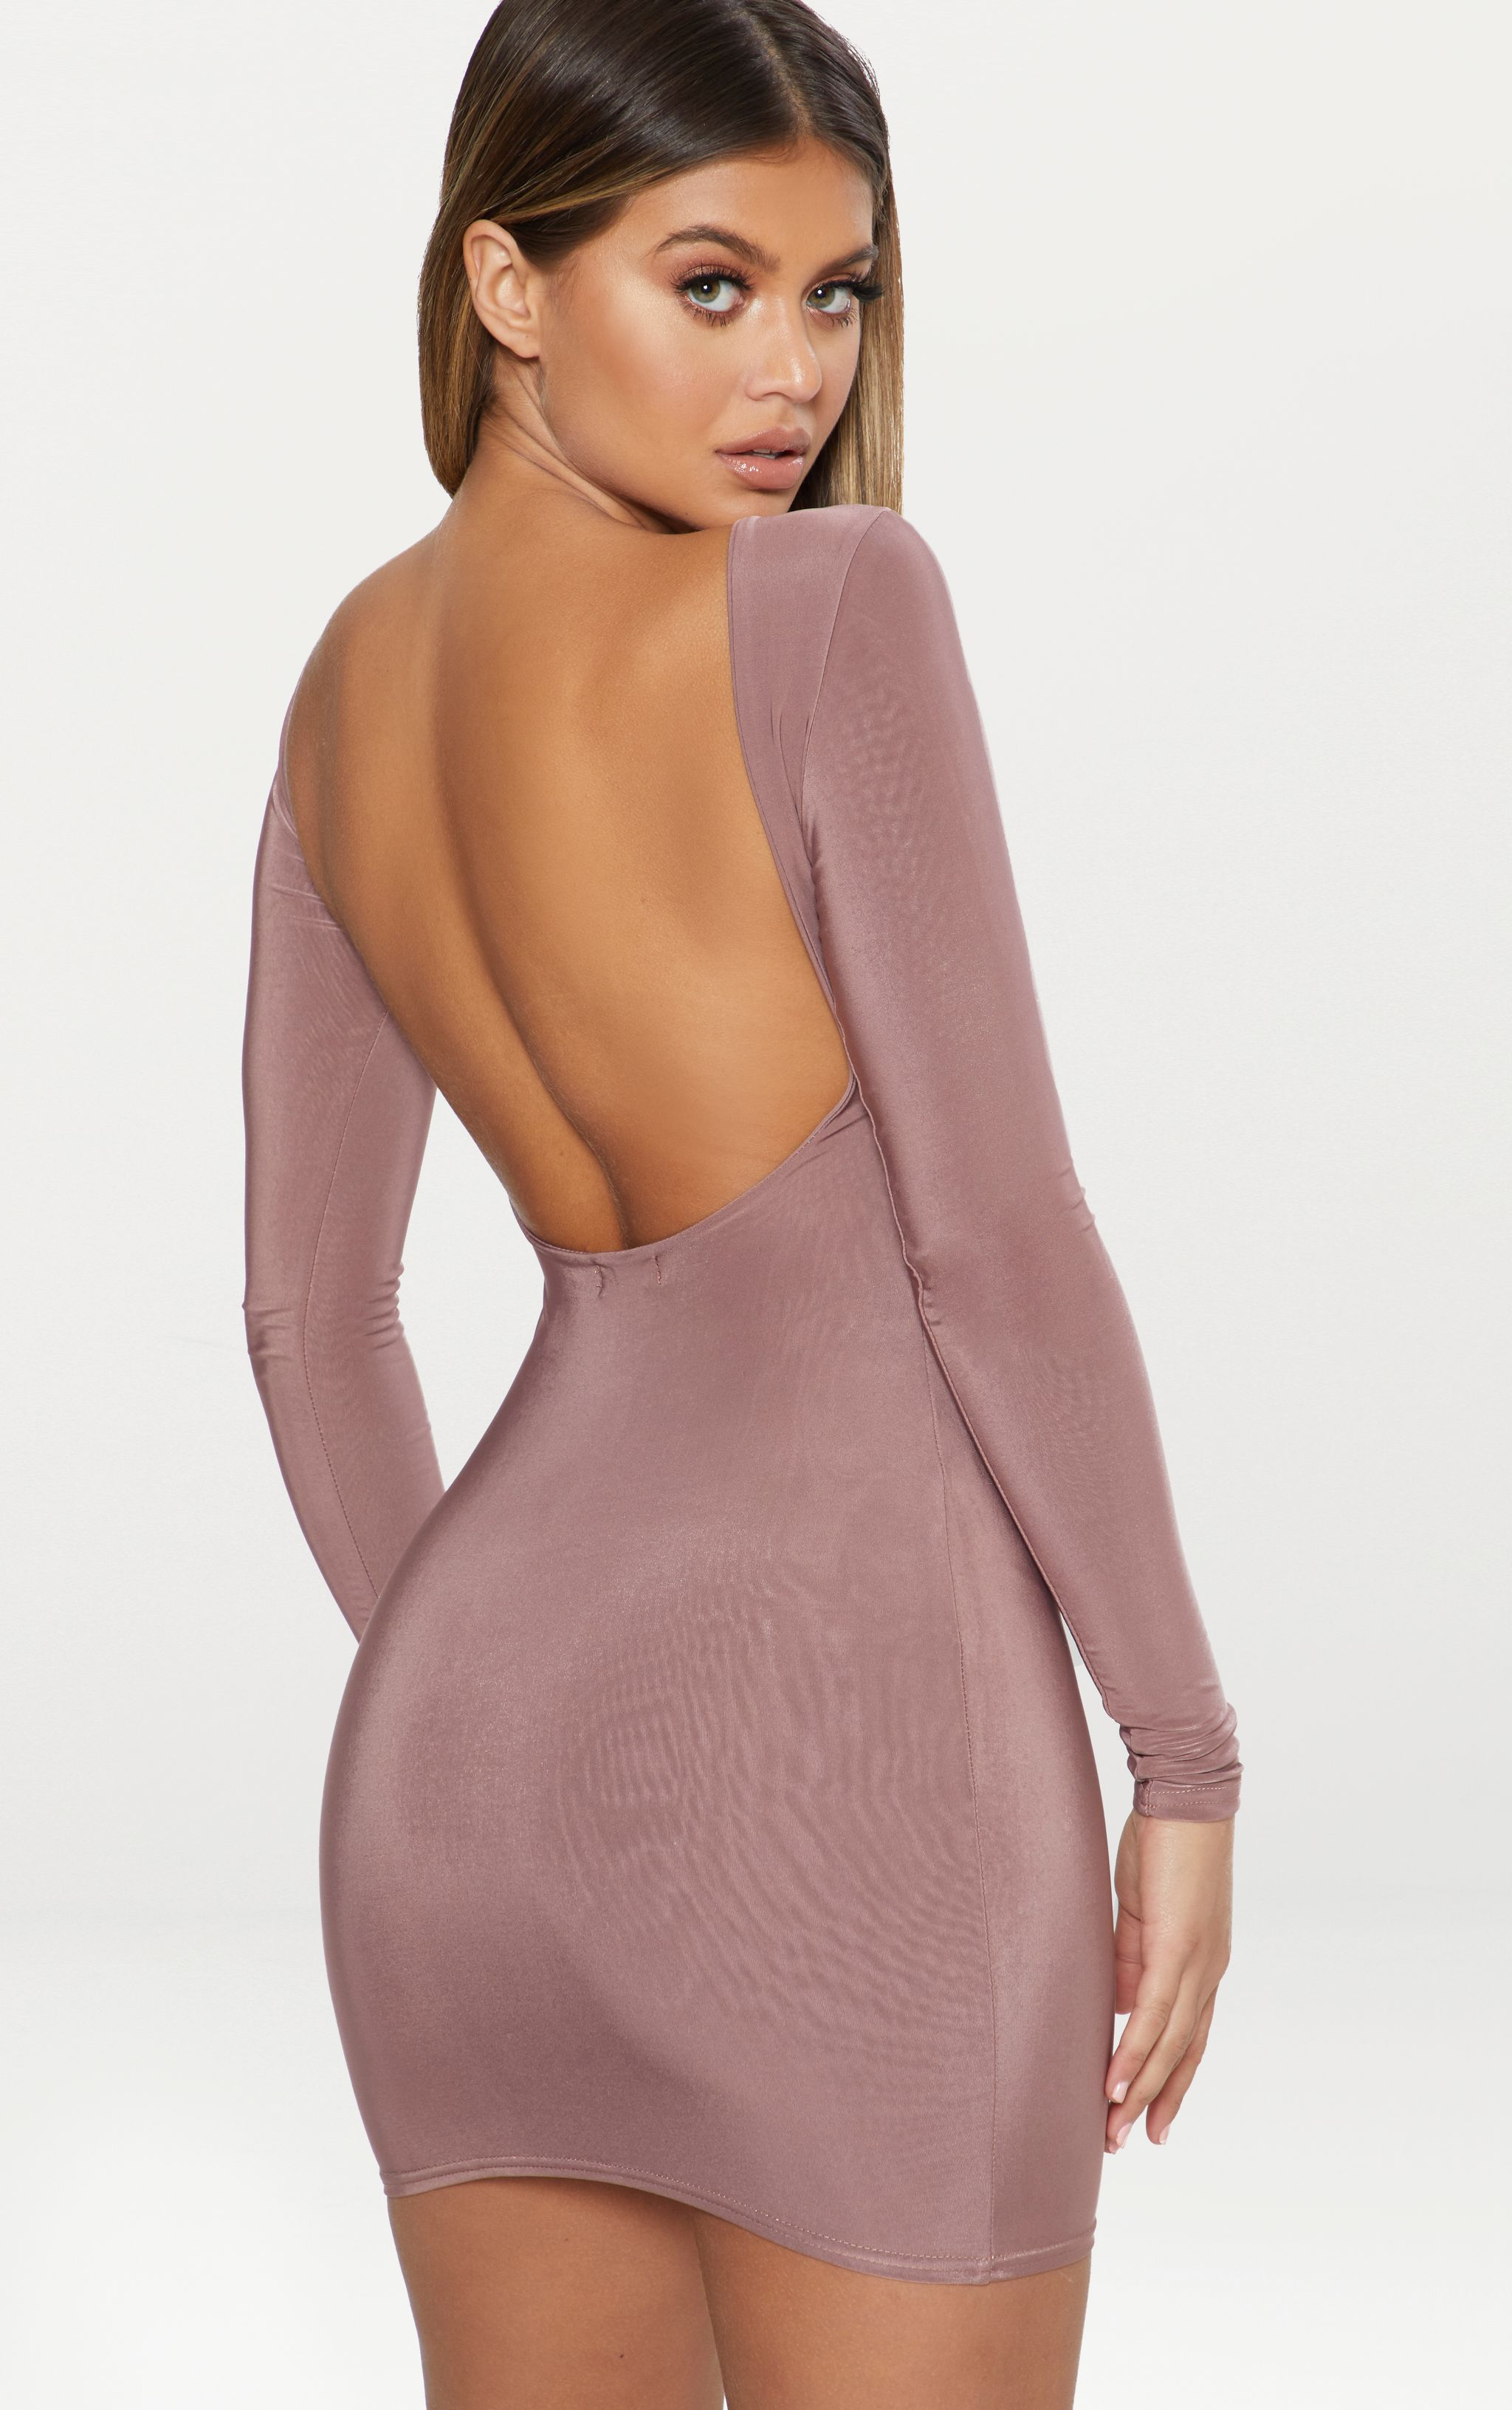 Dark Mauve Second Skin Double Layered Slinky Scoop Back Bodycon Dress